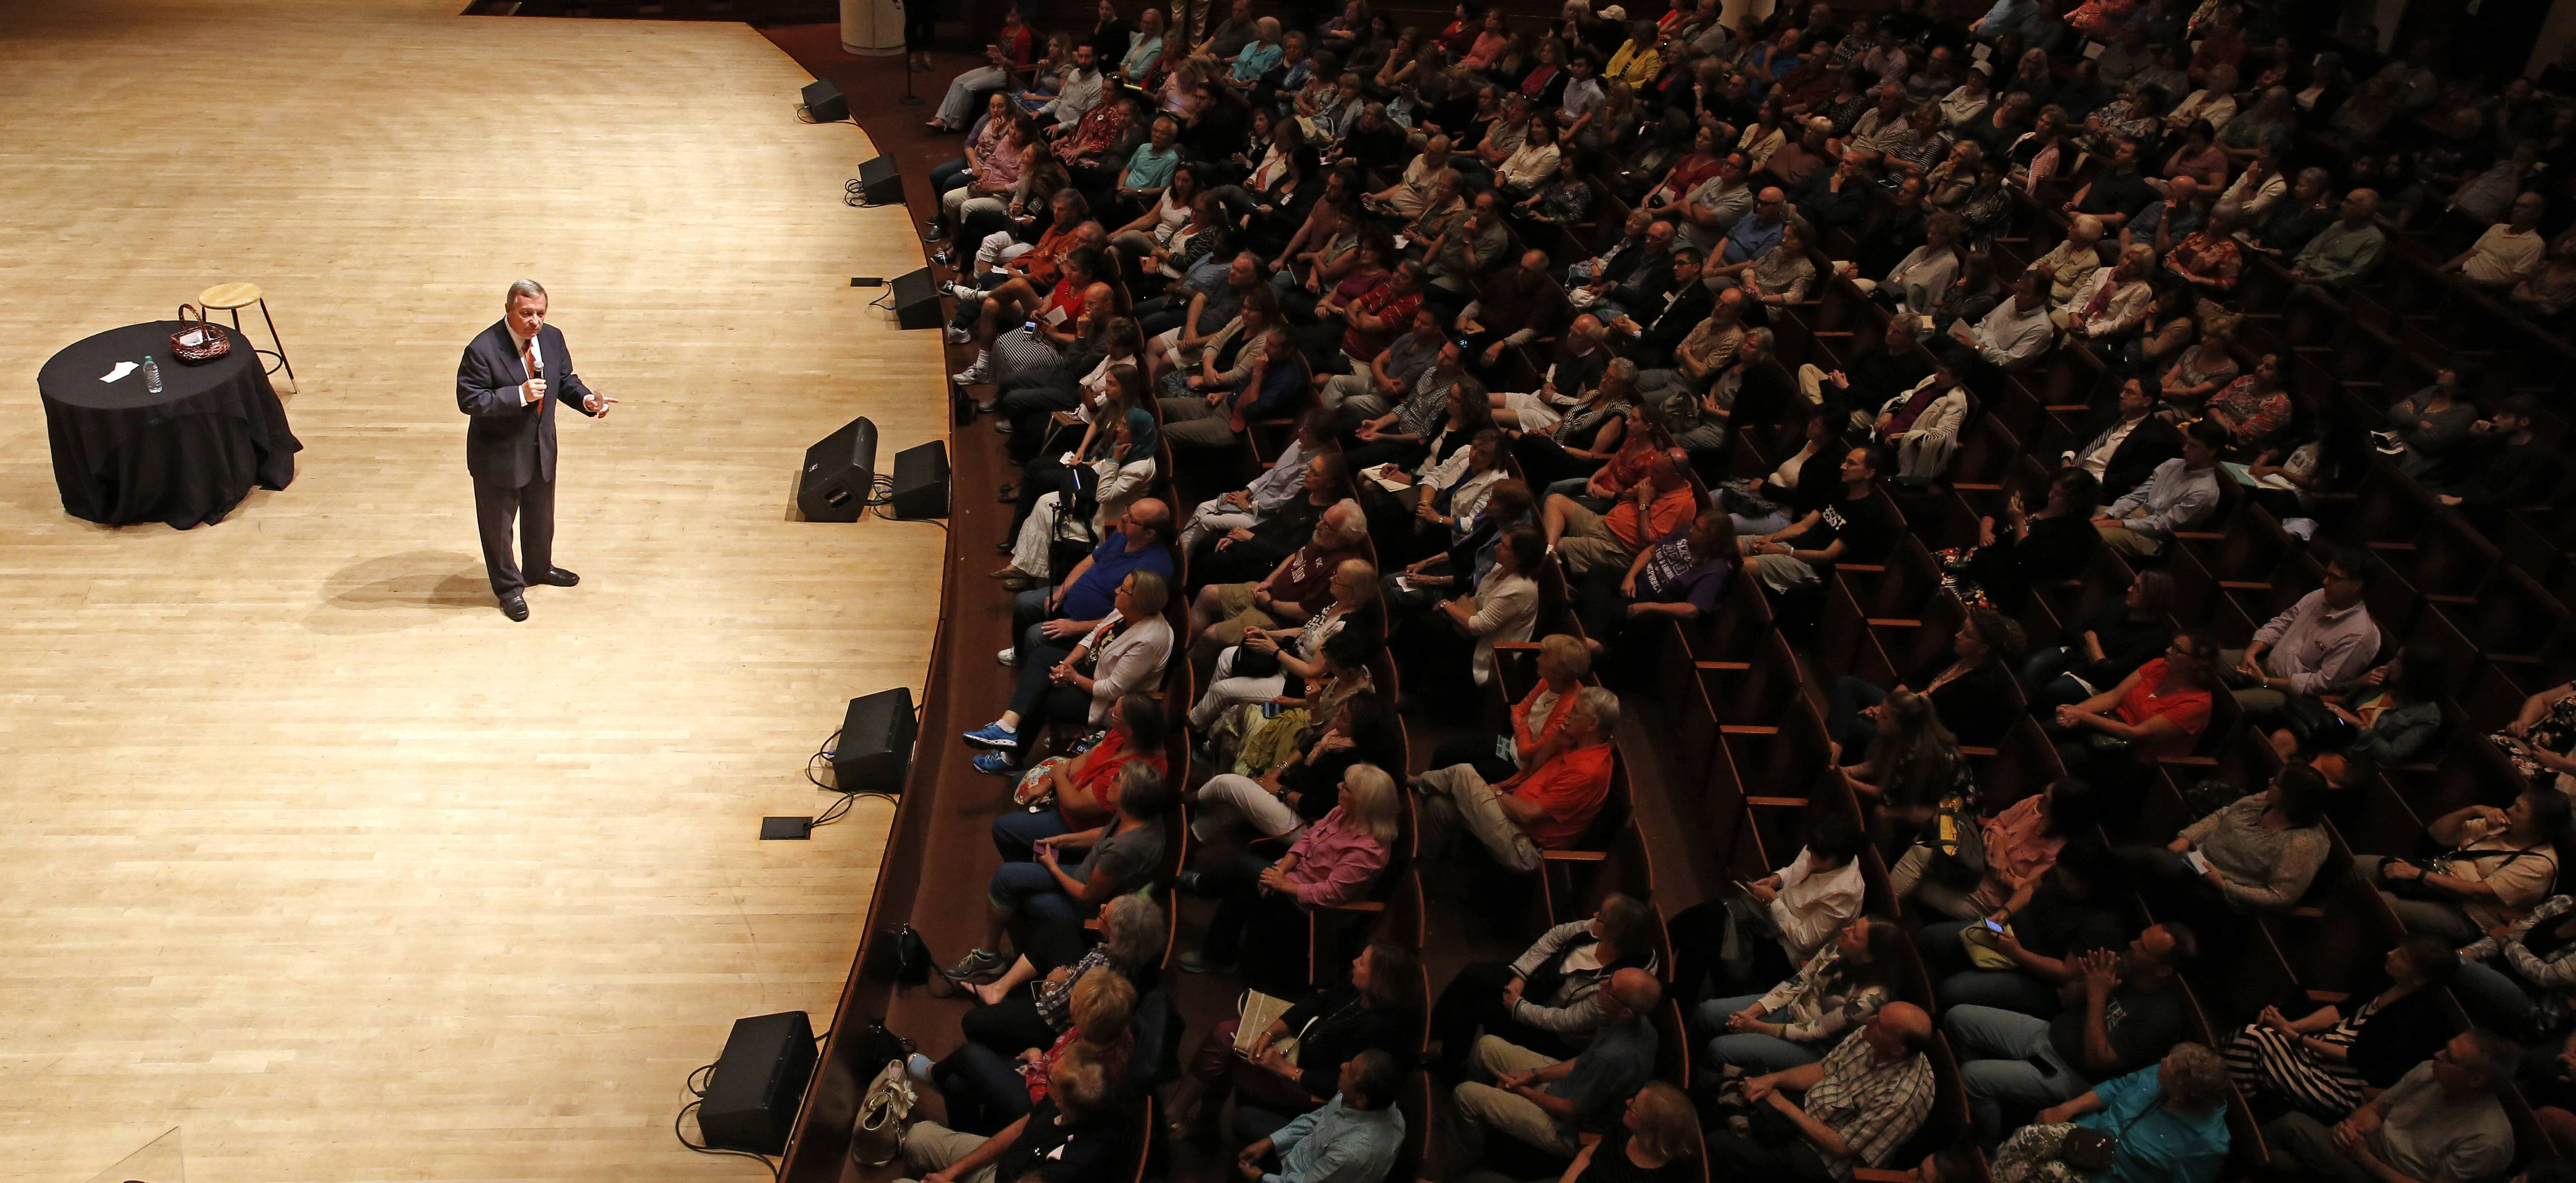 U.S. Sen. Dick Durbin speaks to about 350 supporters Thursday during a town hall discussion at Wentz Concert Hall in Naperville.